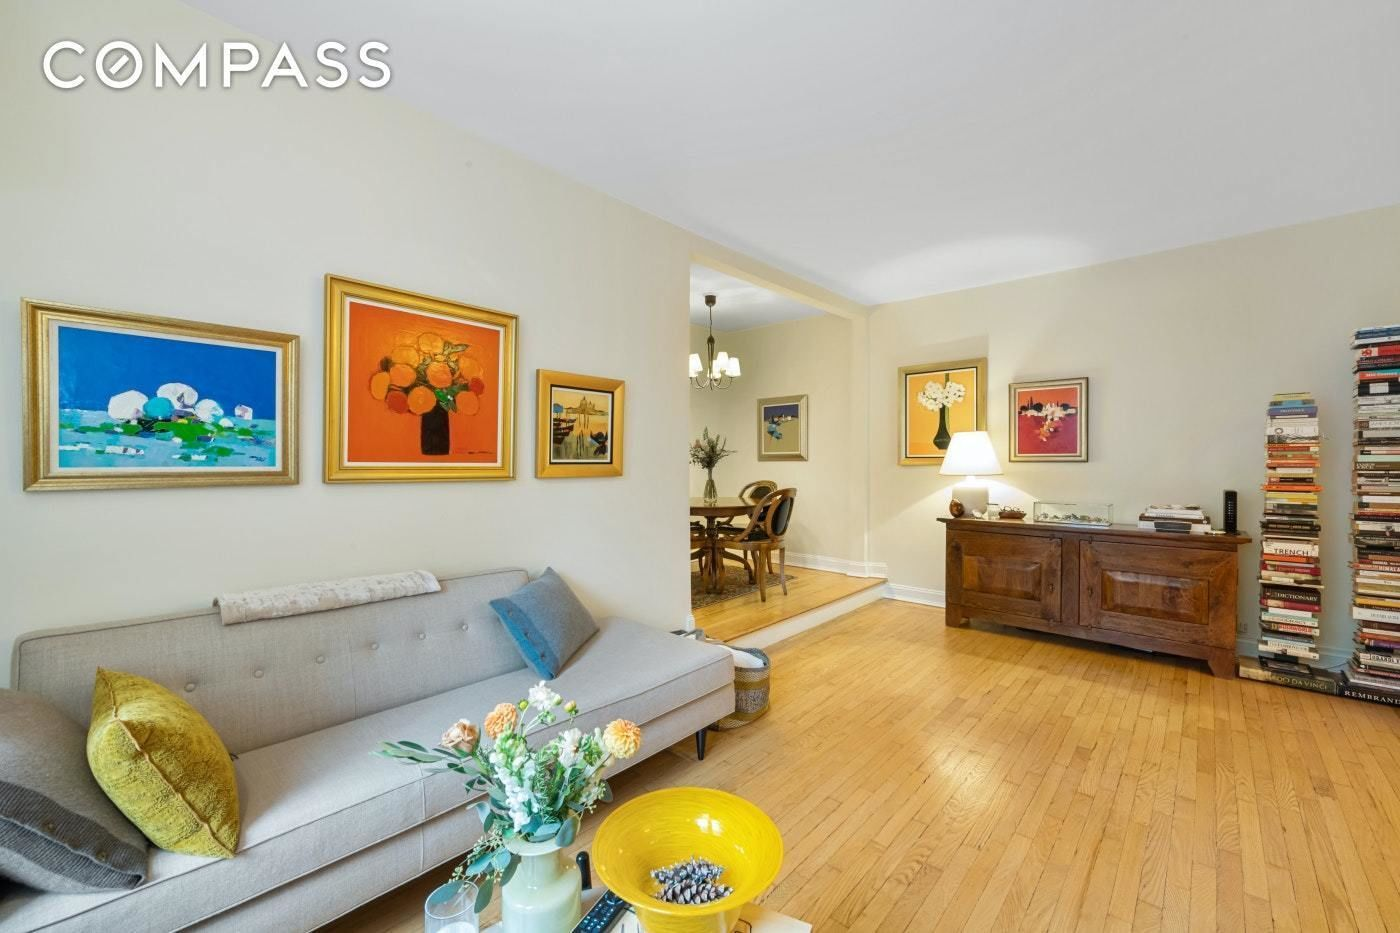 Apartment for sale at 77-12 35th Avenue, Apt B-33